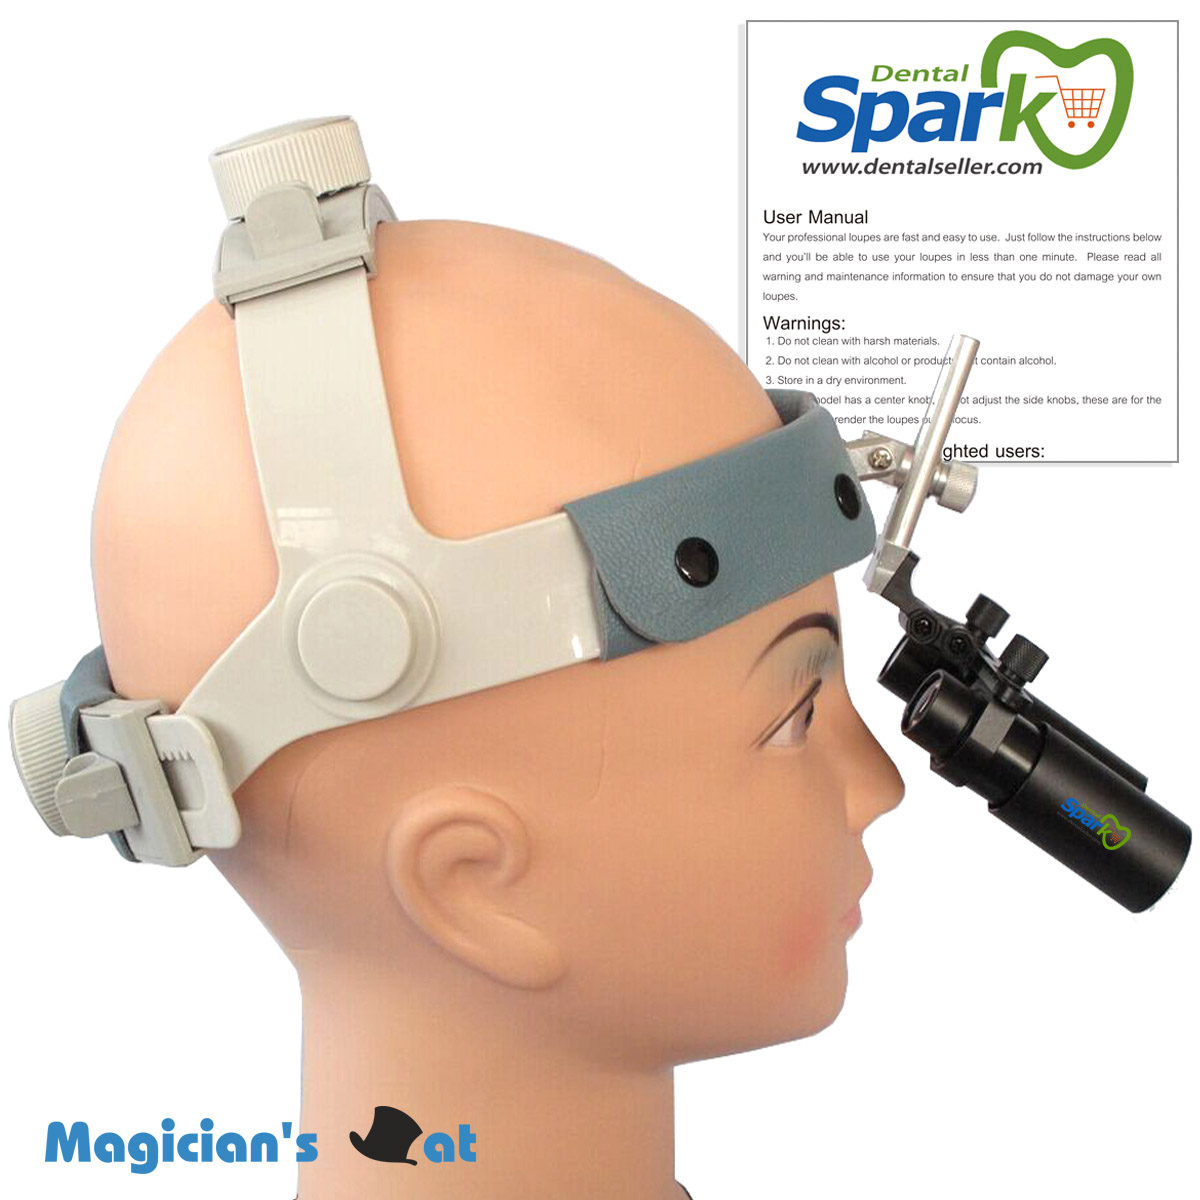 Spark 420mm Working Distance 5.0x Magnification APD Professional Loupes with Comfortable Headband for Dental Surgical spark 5 0x magnification professional